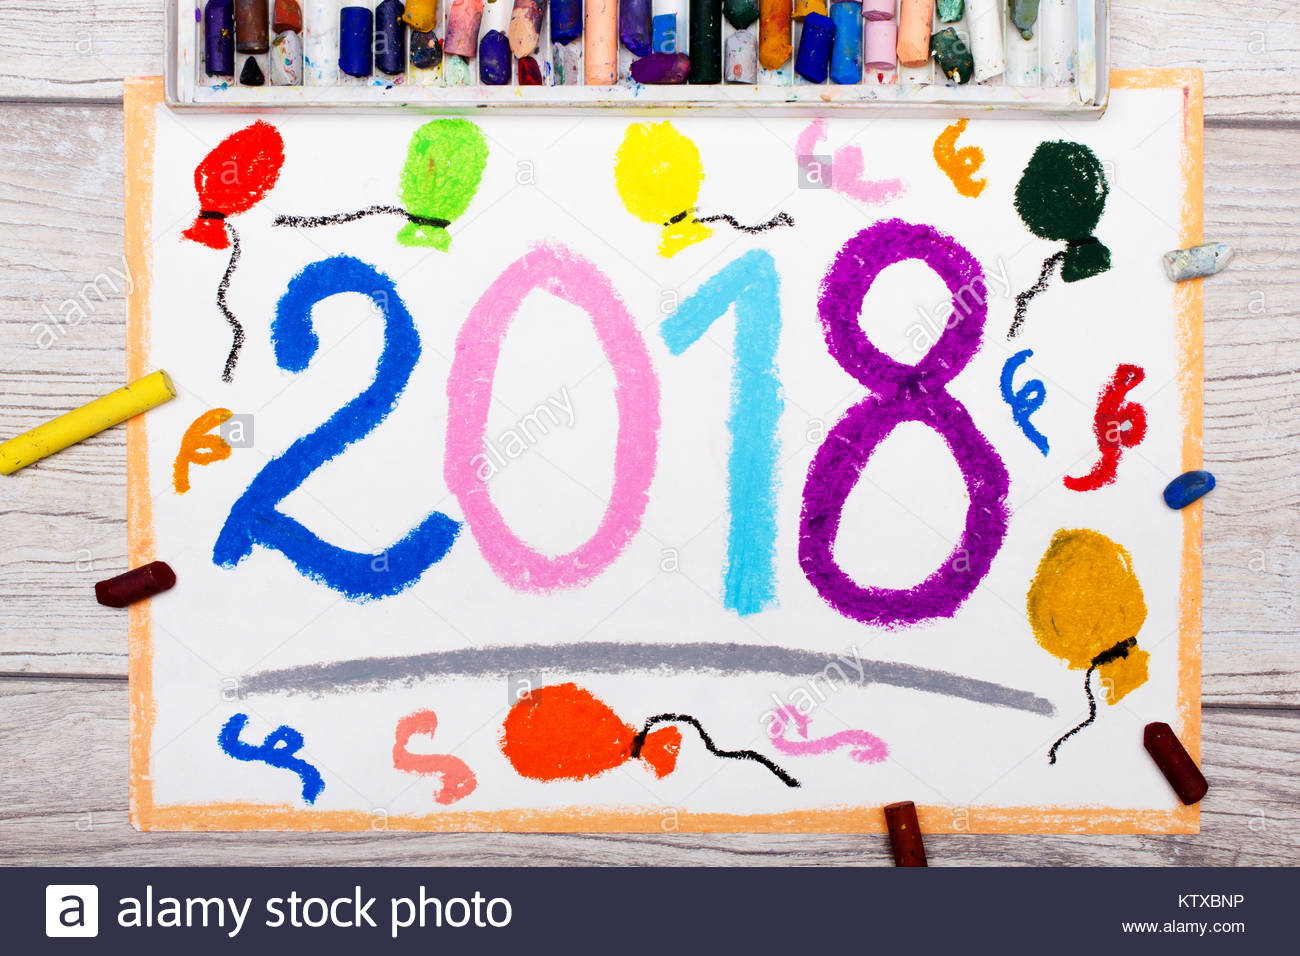 1300x956 Photo Of Colorful Drawing New Year Celebration, 2018 Stock Photo